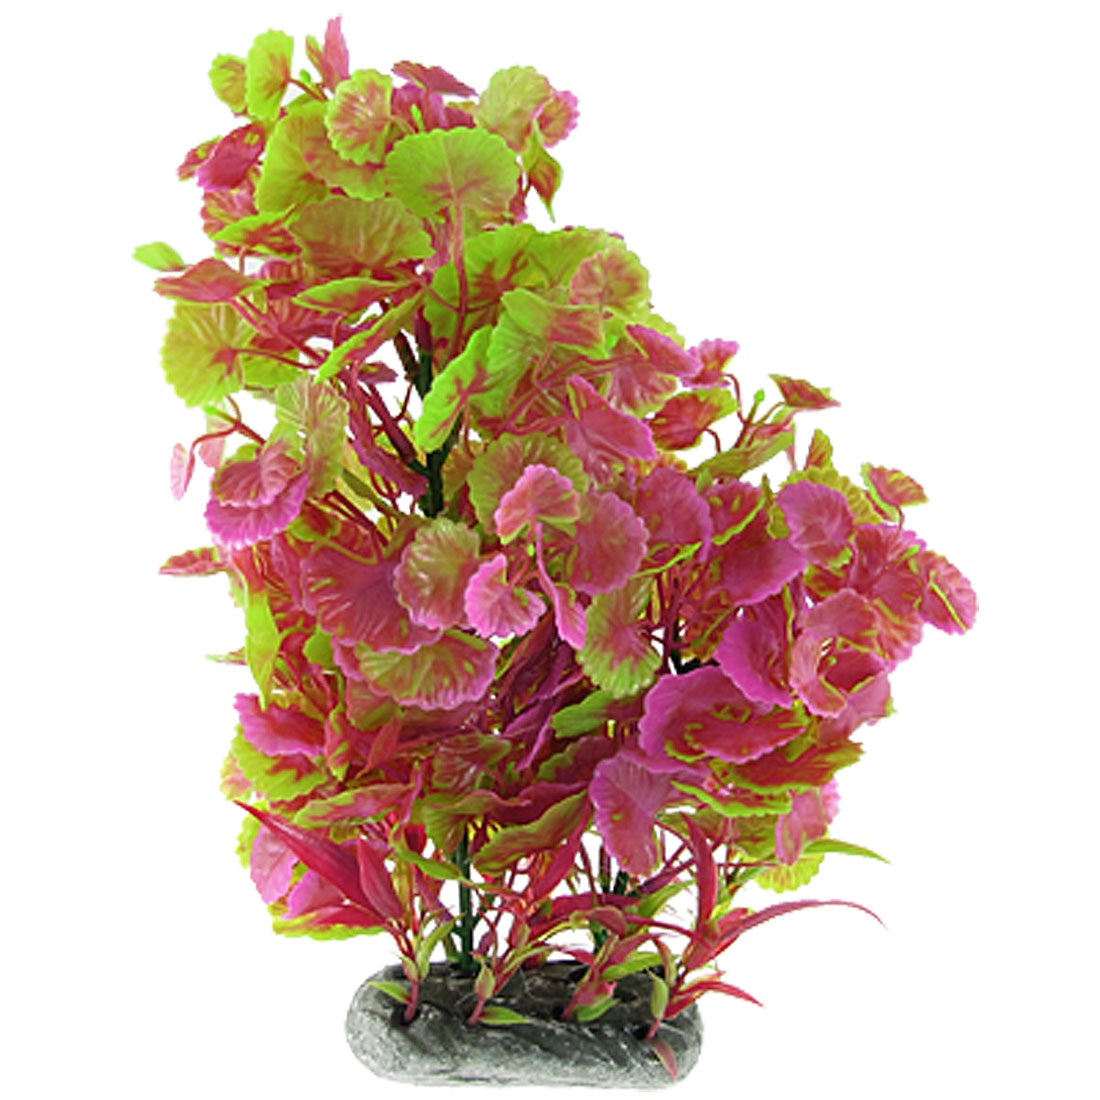 Artificial Magenta Green Plastic Grass Ornament for Fish Tank